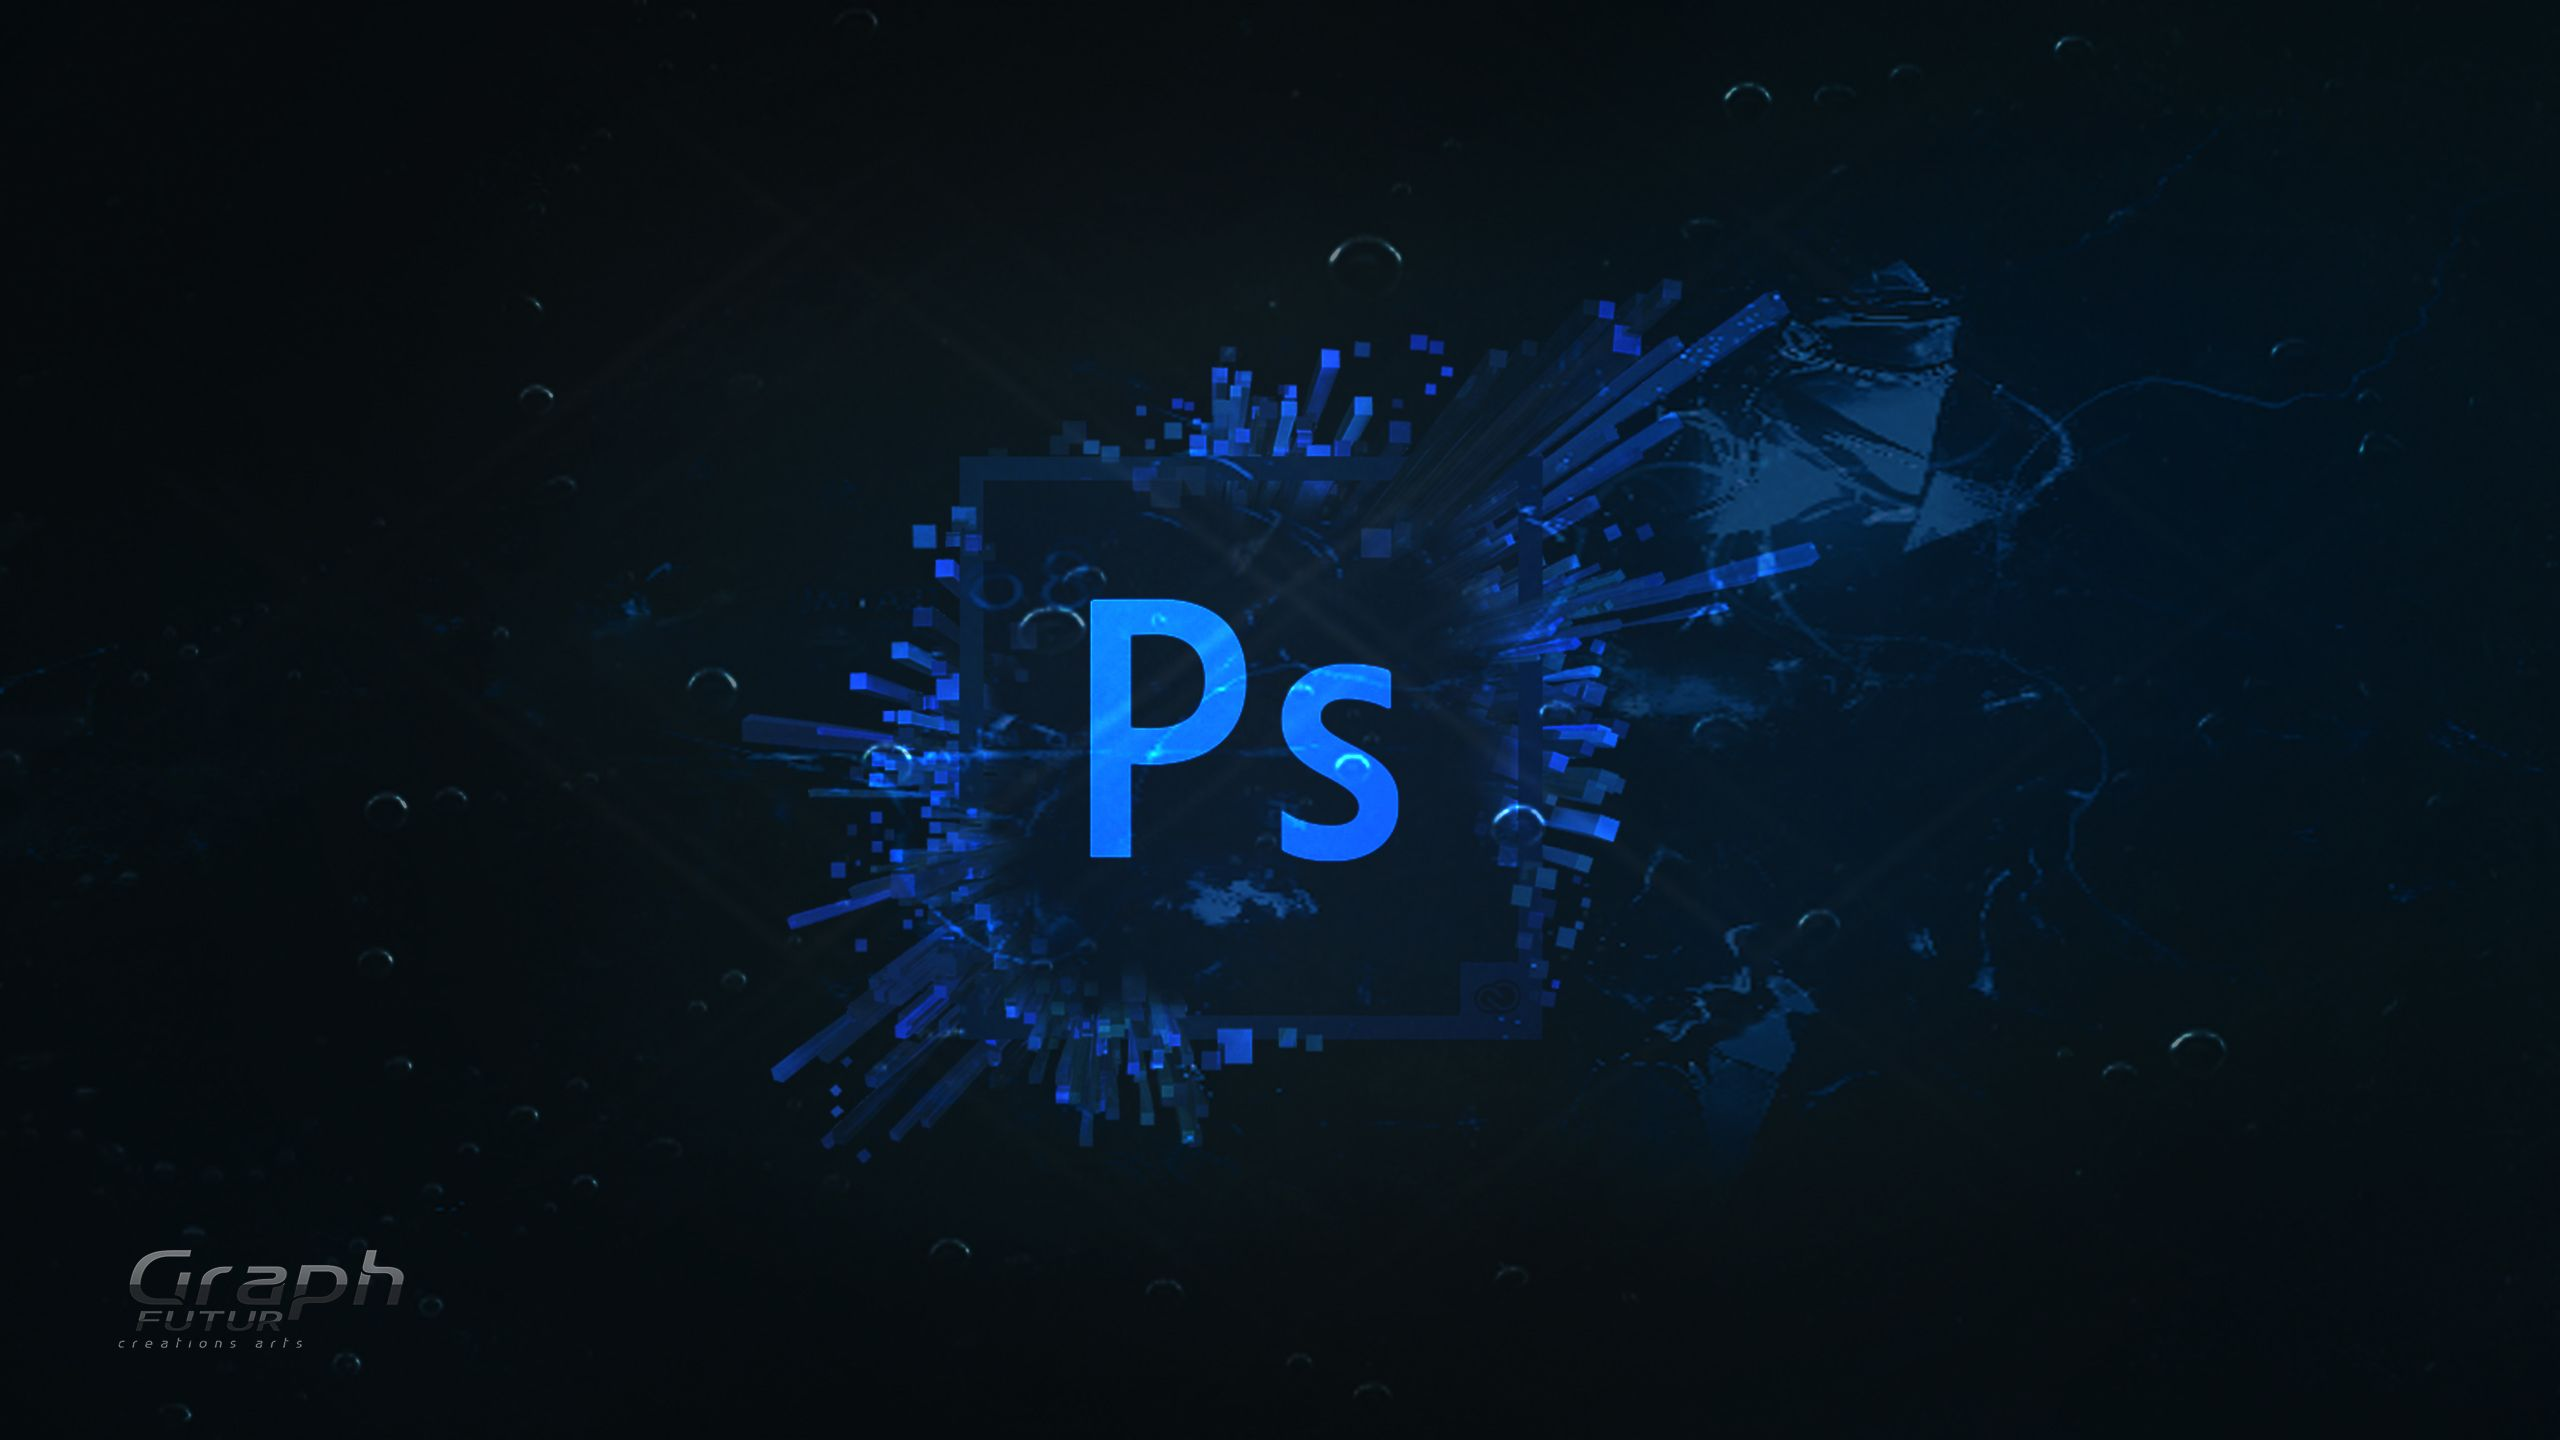 Adobe Photoshop Wallpapers Top Free Adobe Photoshop Backgrounds Wallpaperaccess